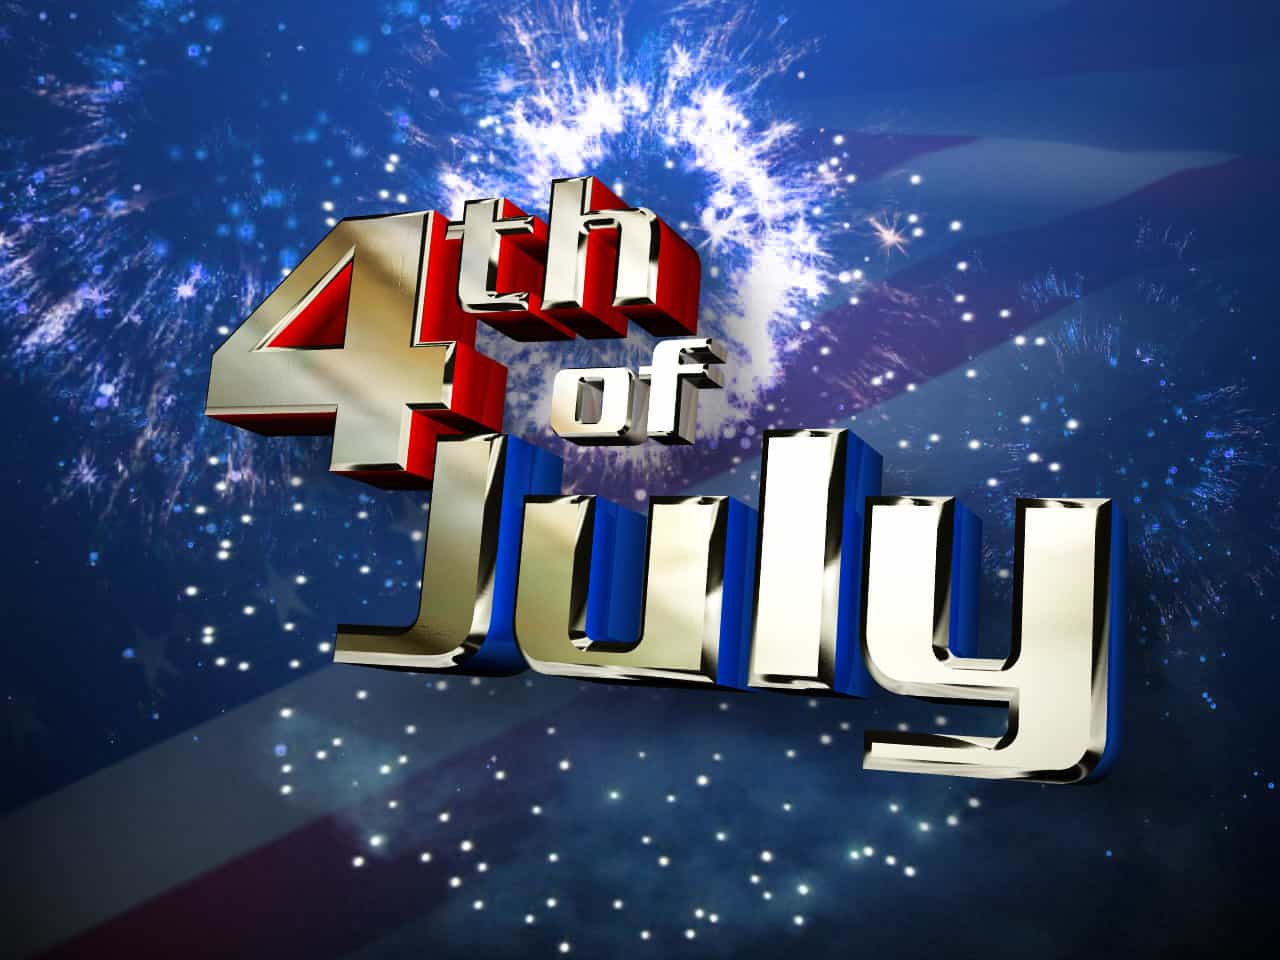 7 things you didn't know about the 4th of July